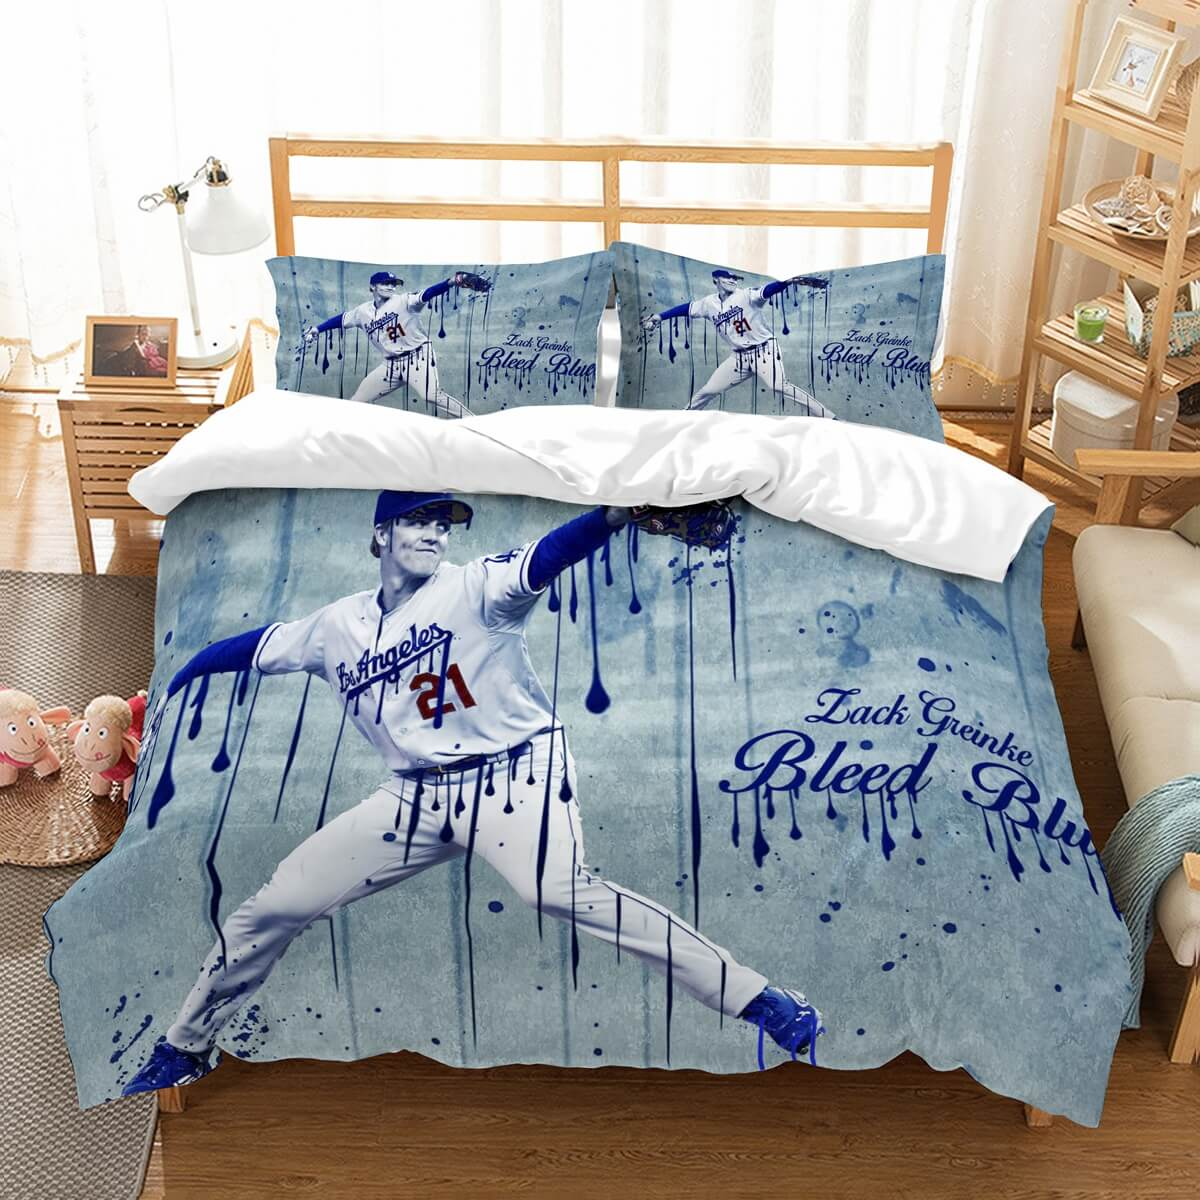 3D Customize Zach Grinko Arizona Diamondbacks Bedding Set Duvet Cover Set Bedroom Set Bedlinen